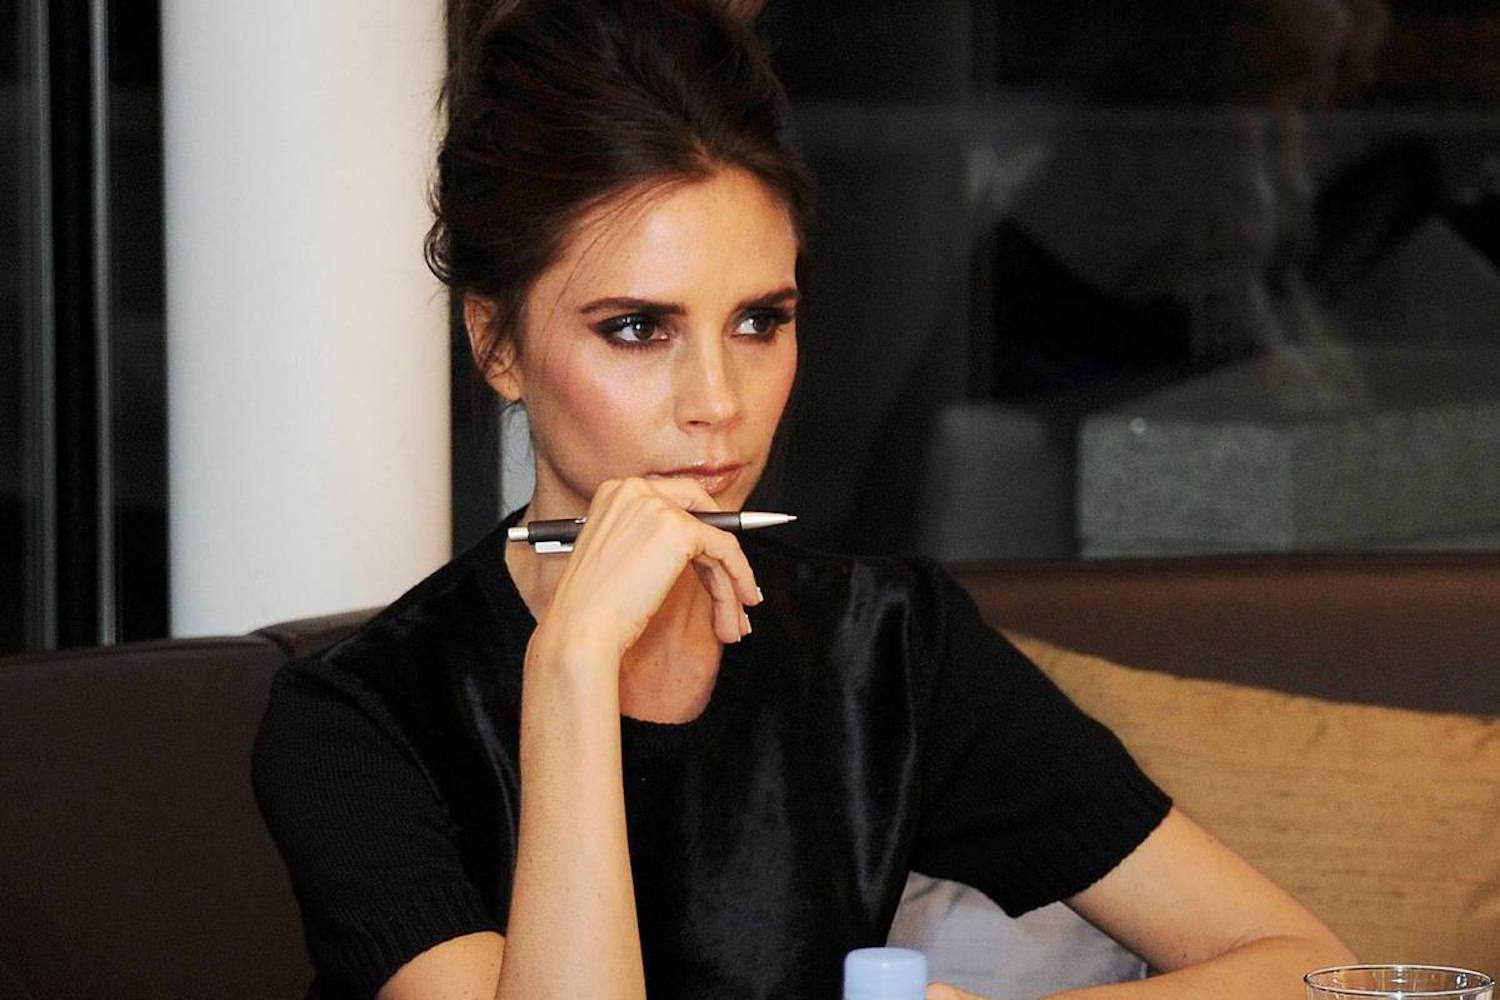 victoria beckham at work